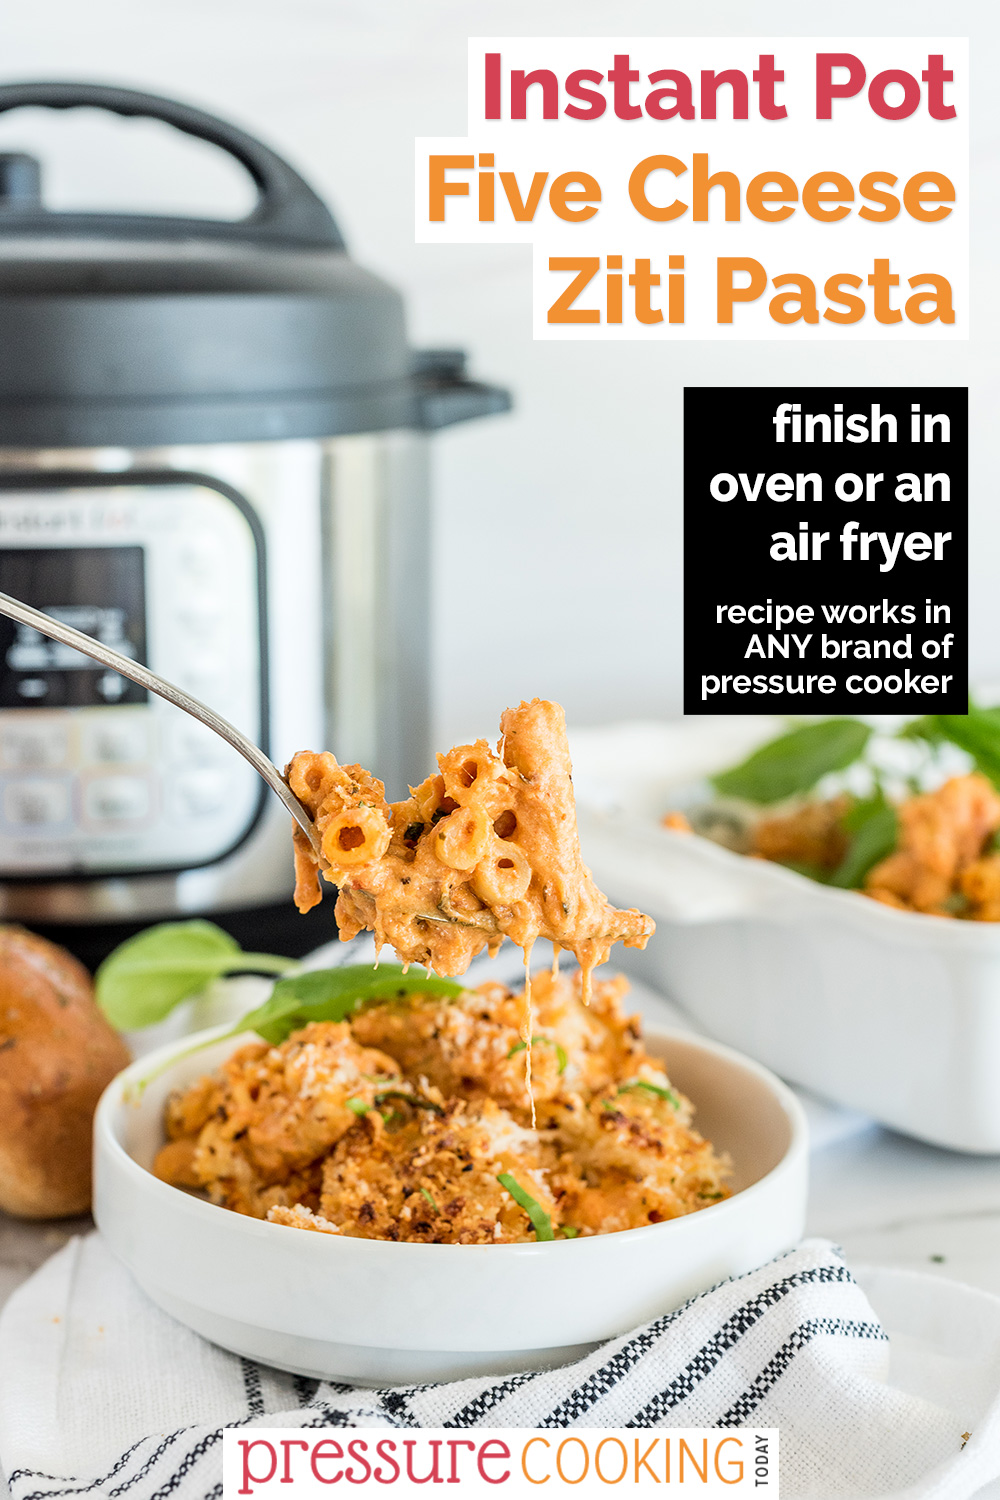 A pinterest pin promoting Instant Pot five cheese baked ziti, with instrutions to finish in the oven or air fryer. The image shows a spoonful of the ziti in front of an Instant Pot. via @PressureCook2da